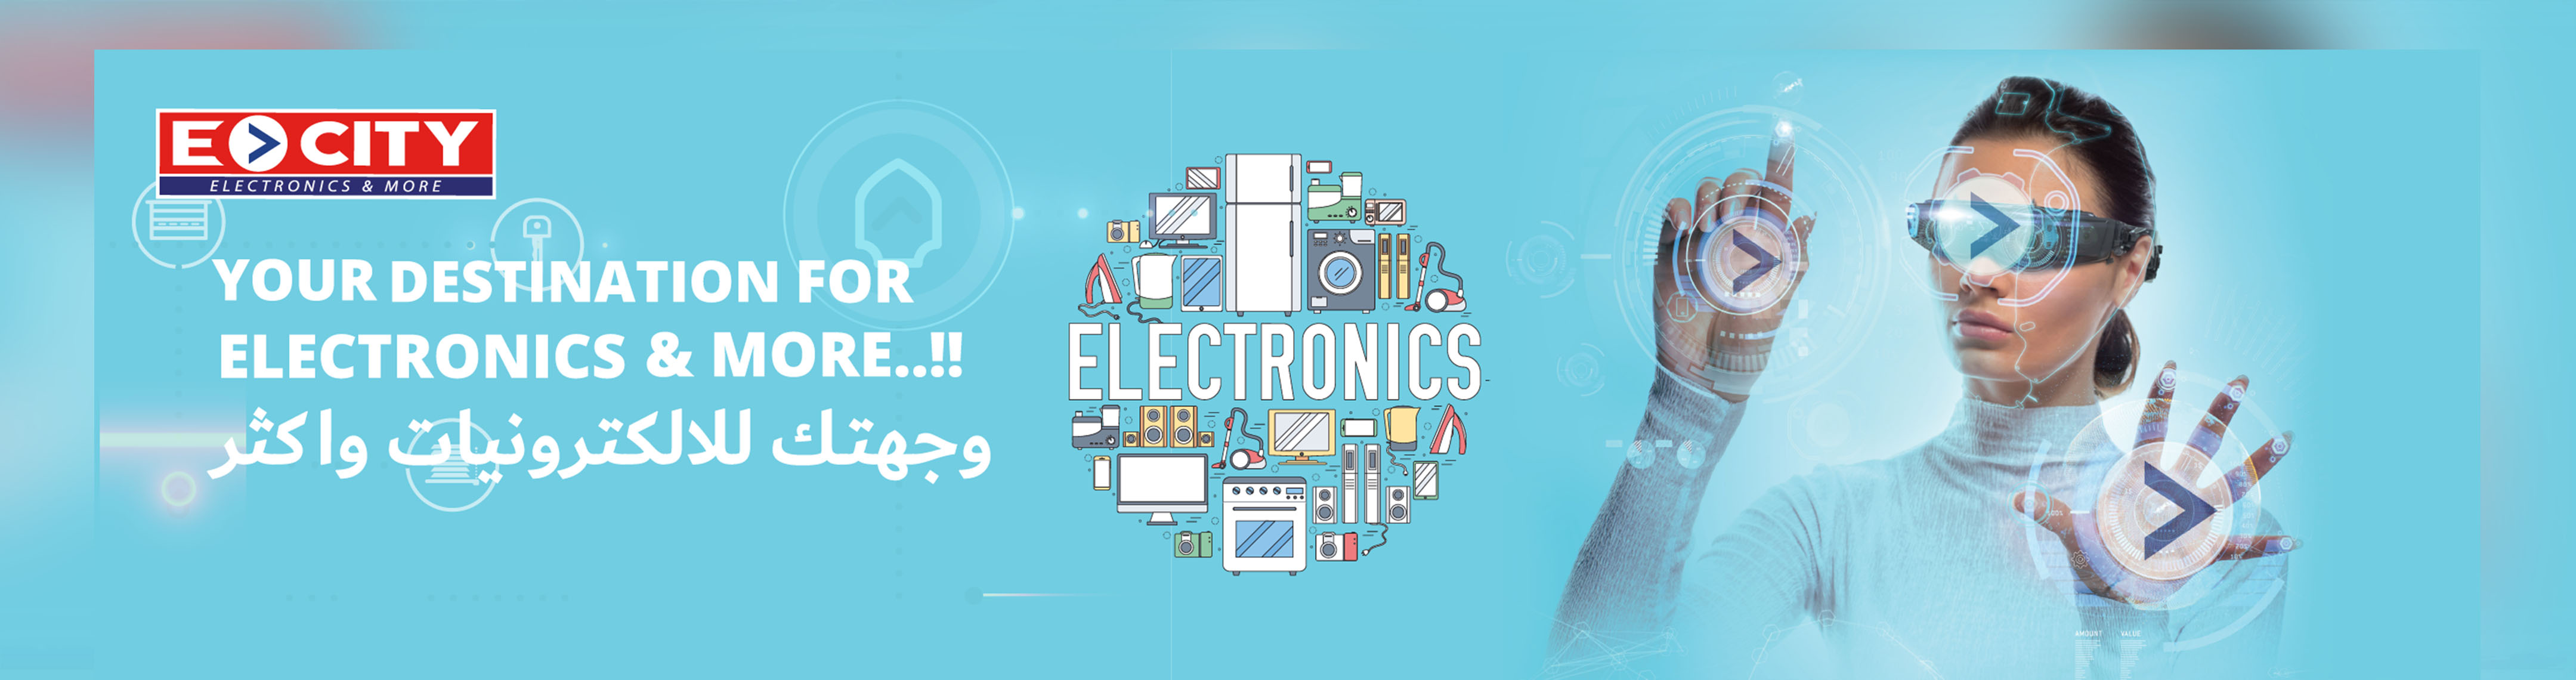 Ecity Dubai | Electronics and More